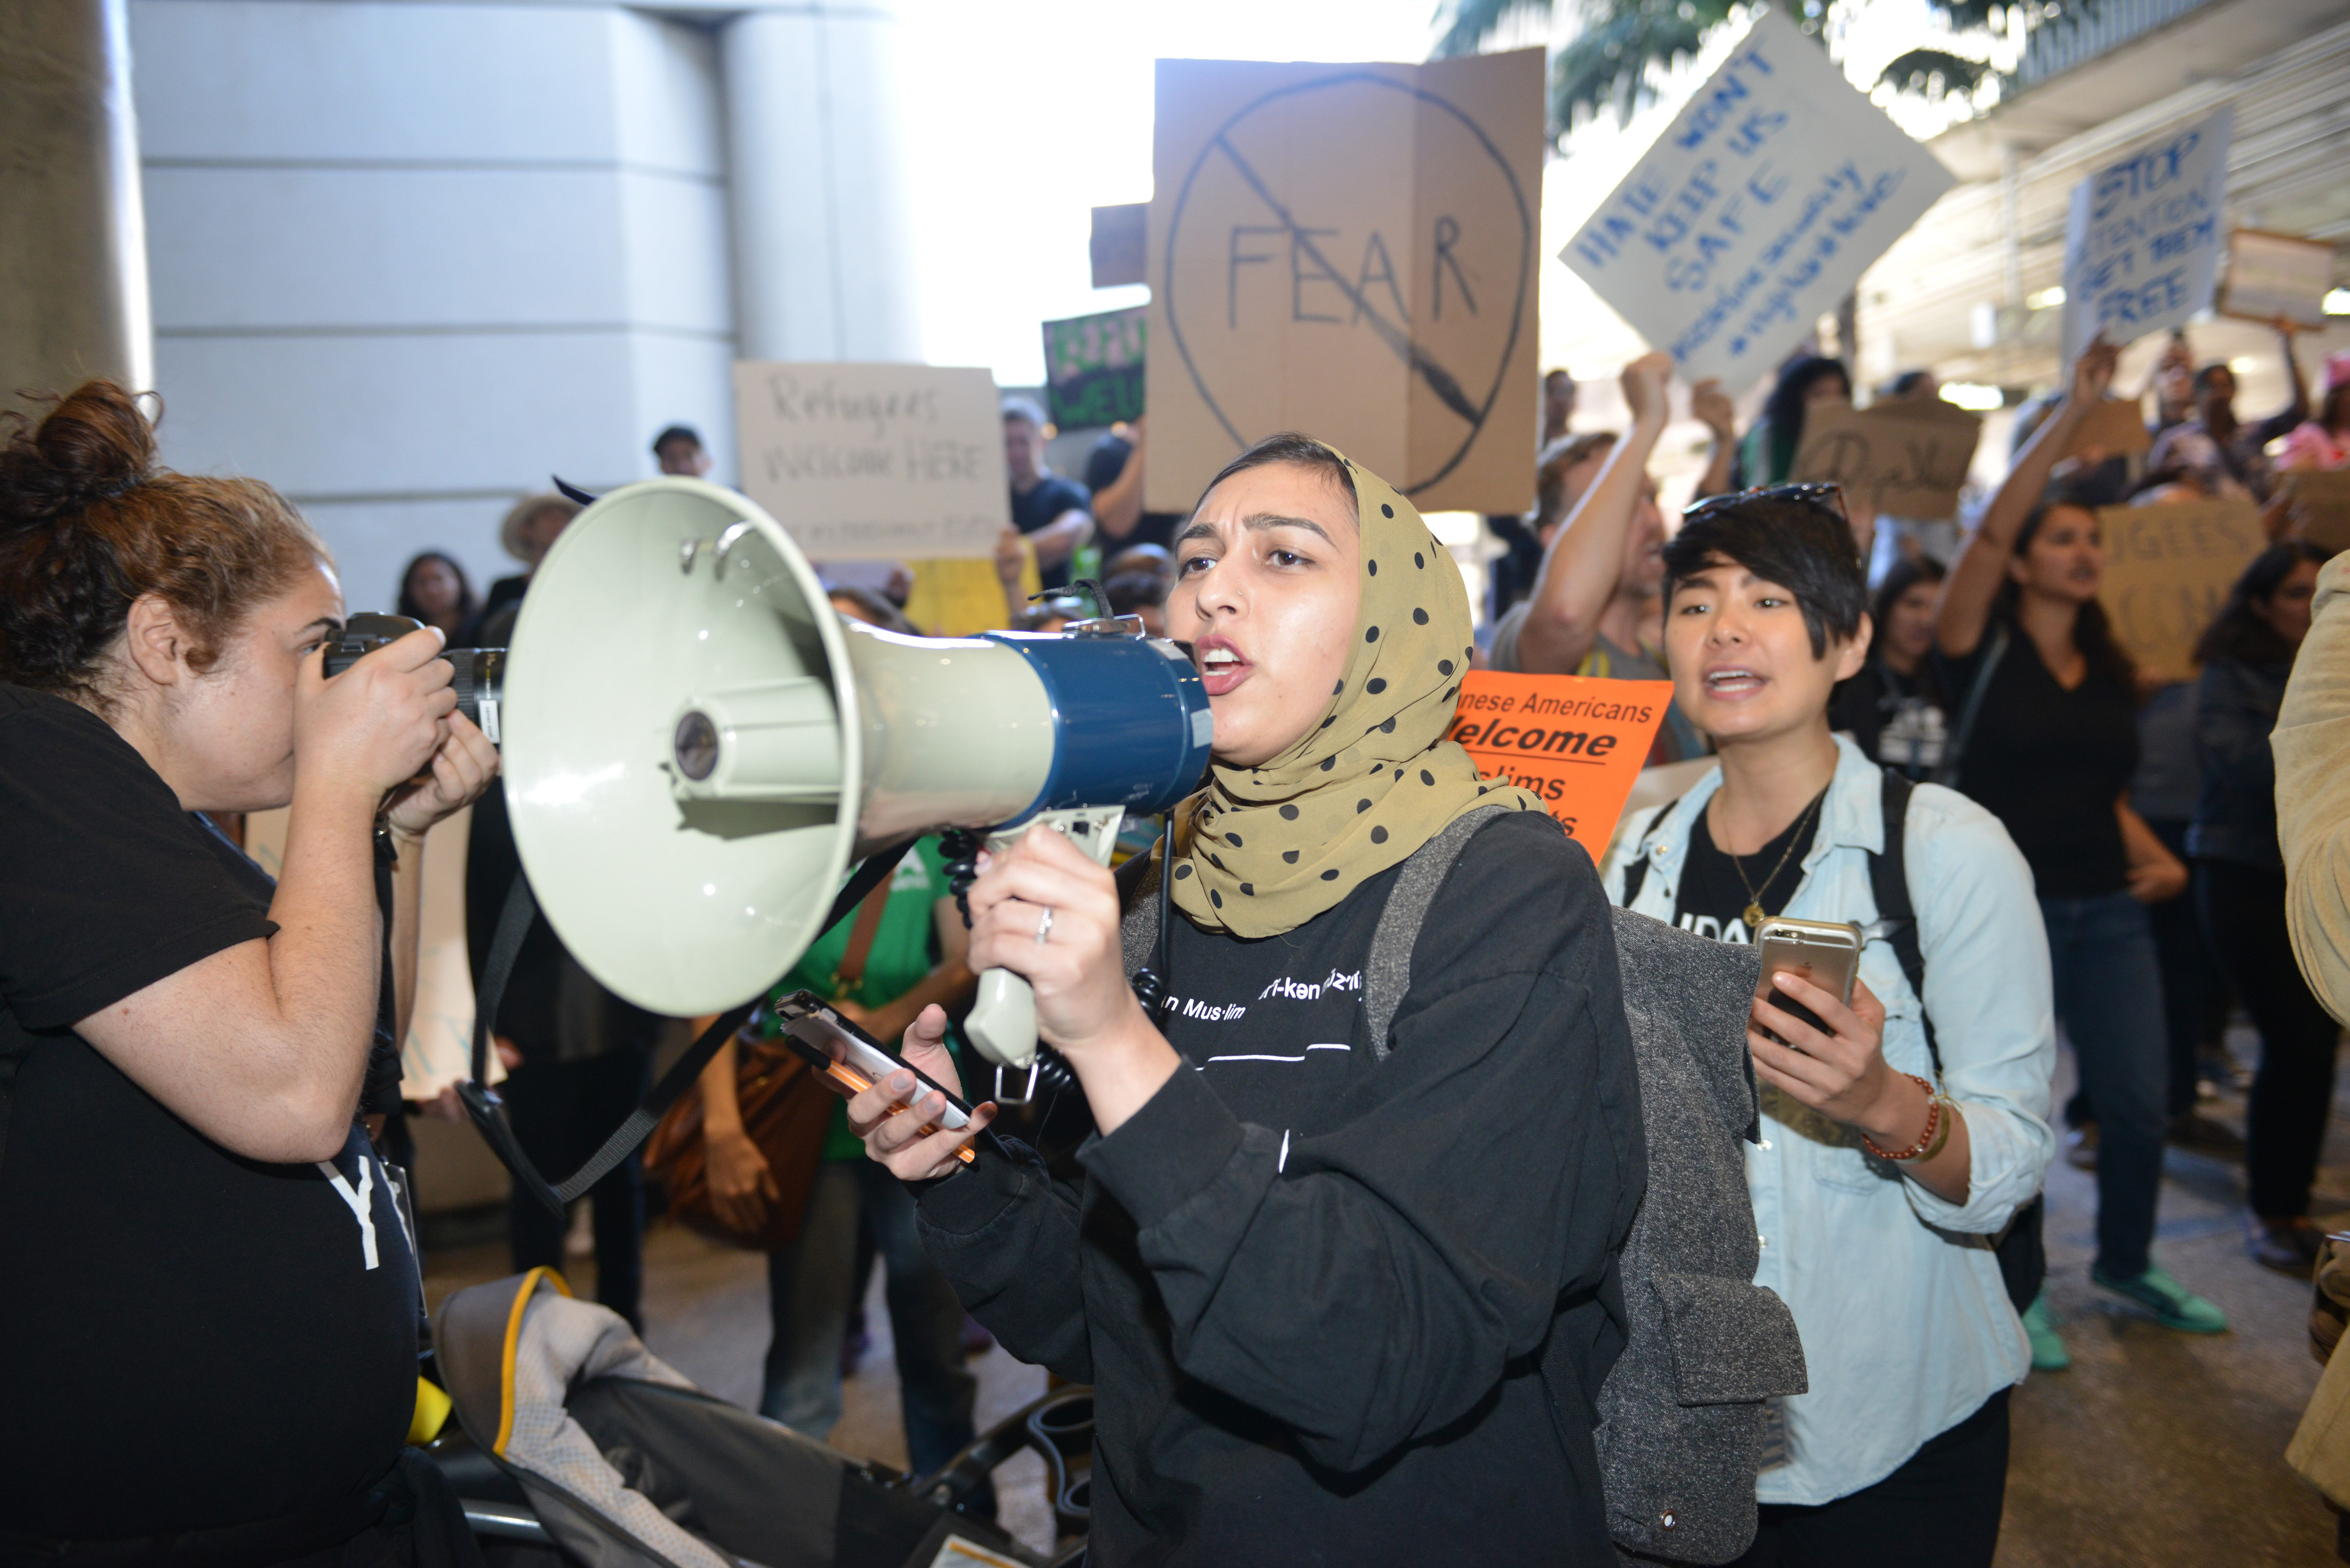 Protest against President Donald Trump in Los Angeles